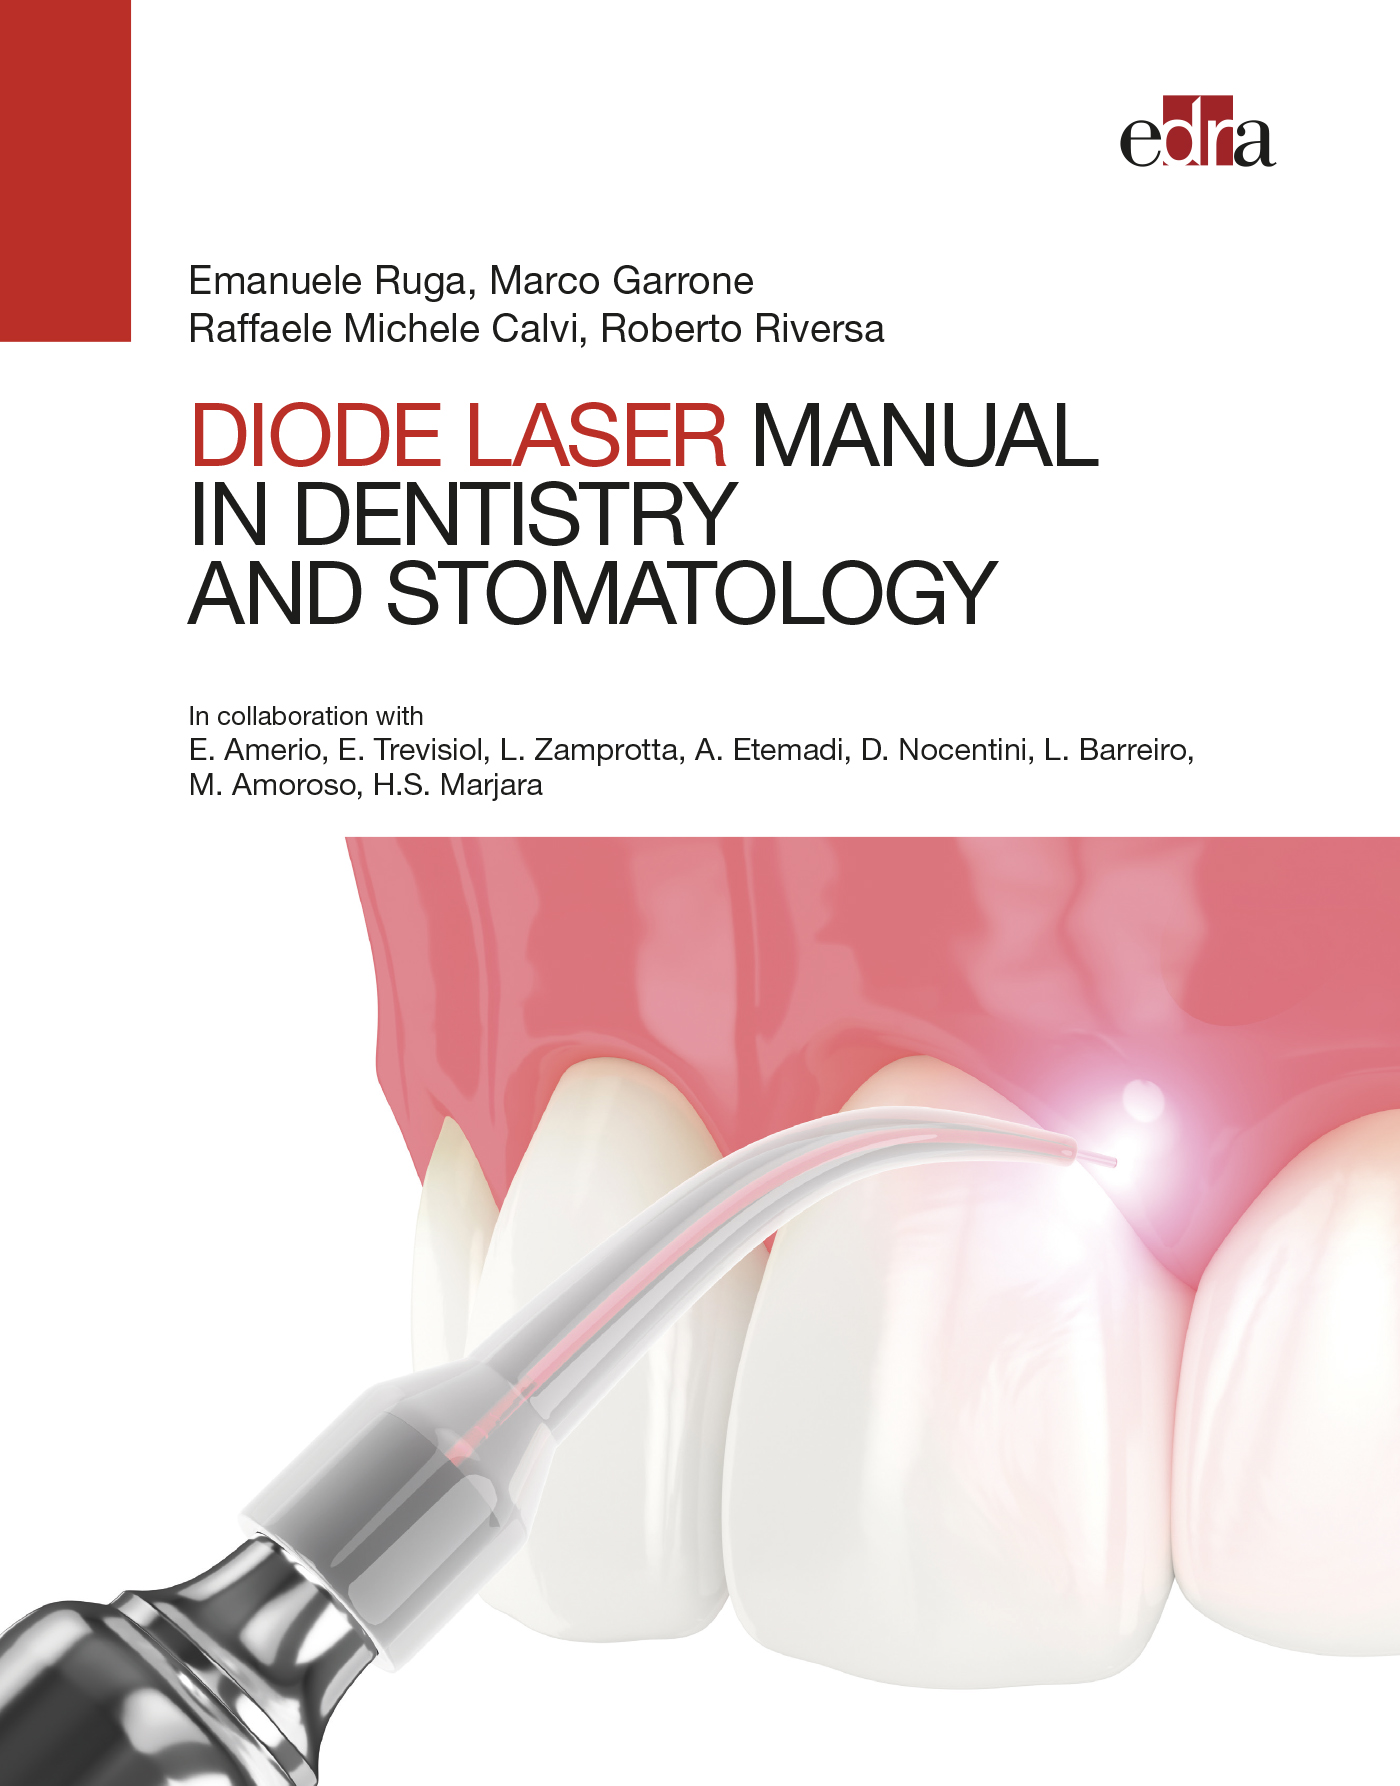 MANUAL OF DIODE LASER IN DENTISTRY AND STOMATOLOGY